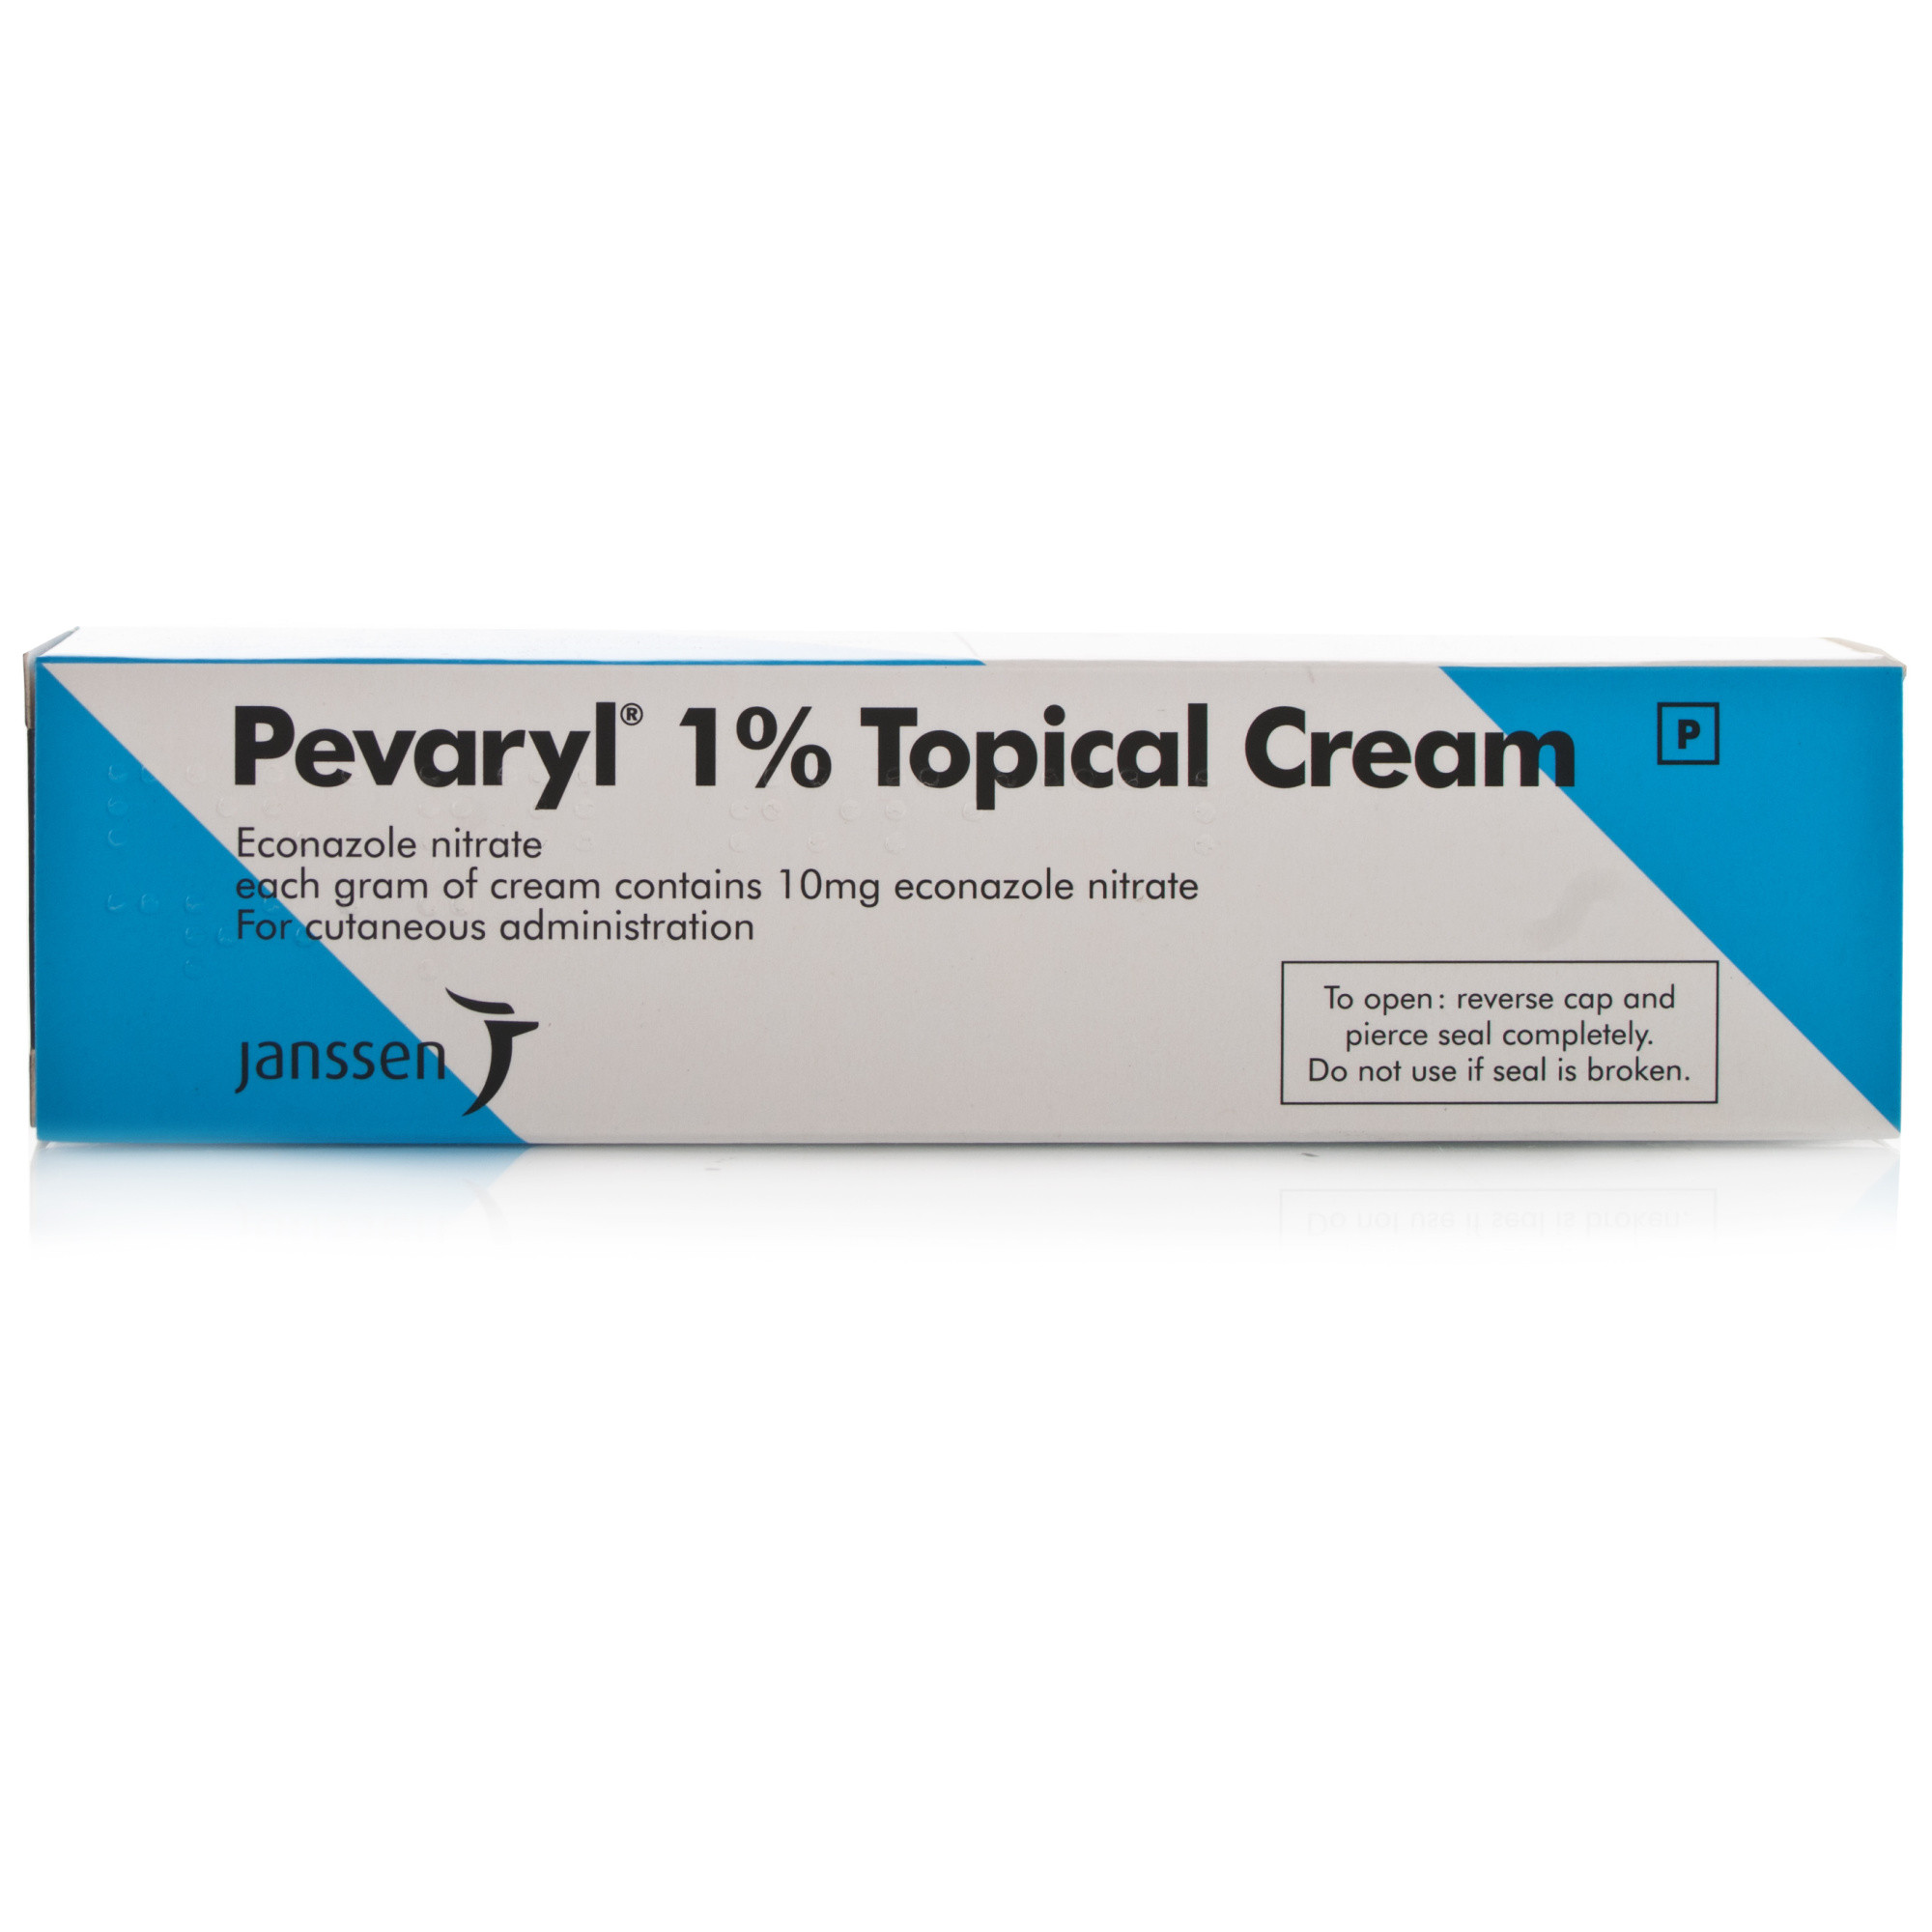 Pevaryl 1% Topical Cream 30g | Prescription Products